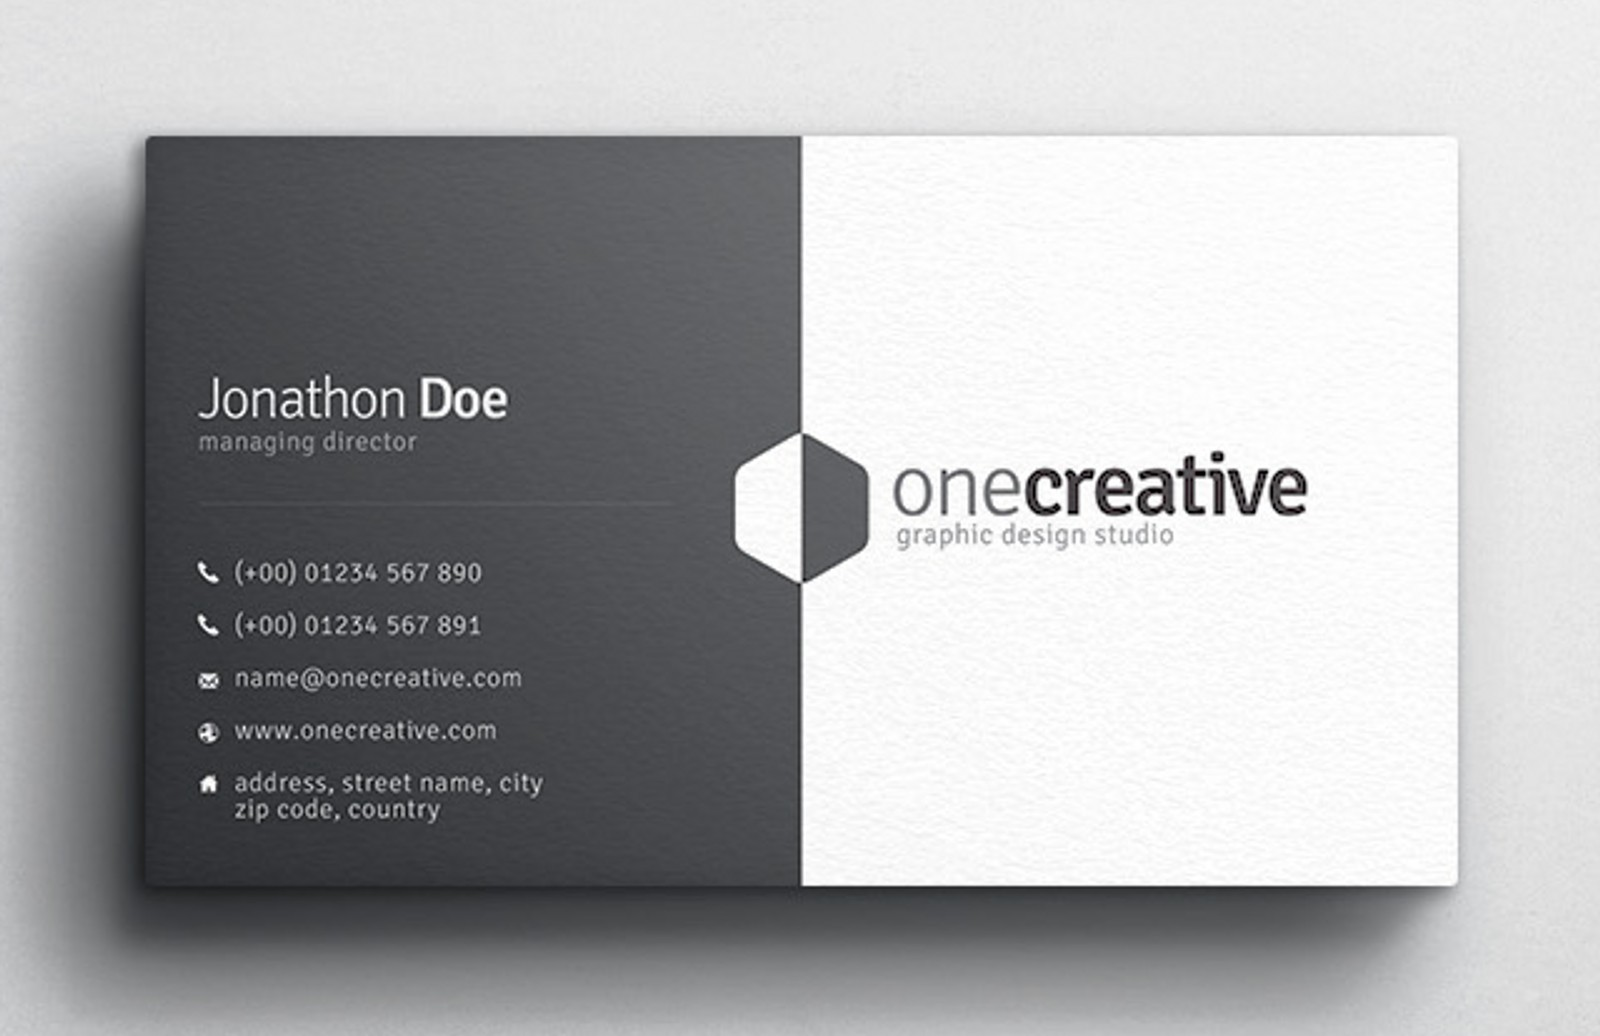 Duo Business Card Design Medialoot